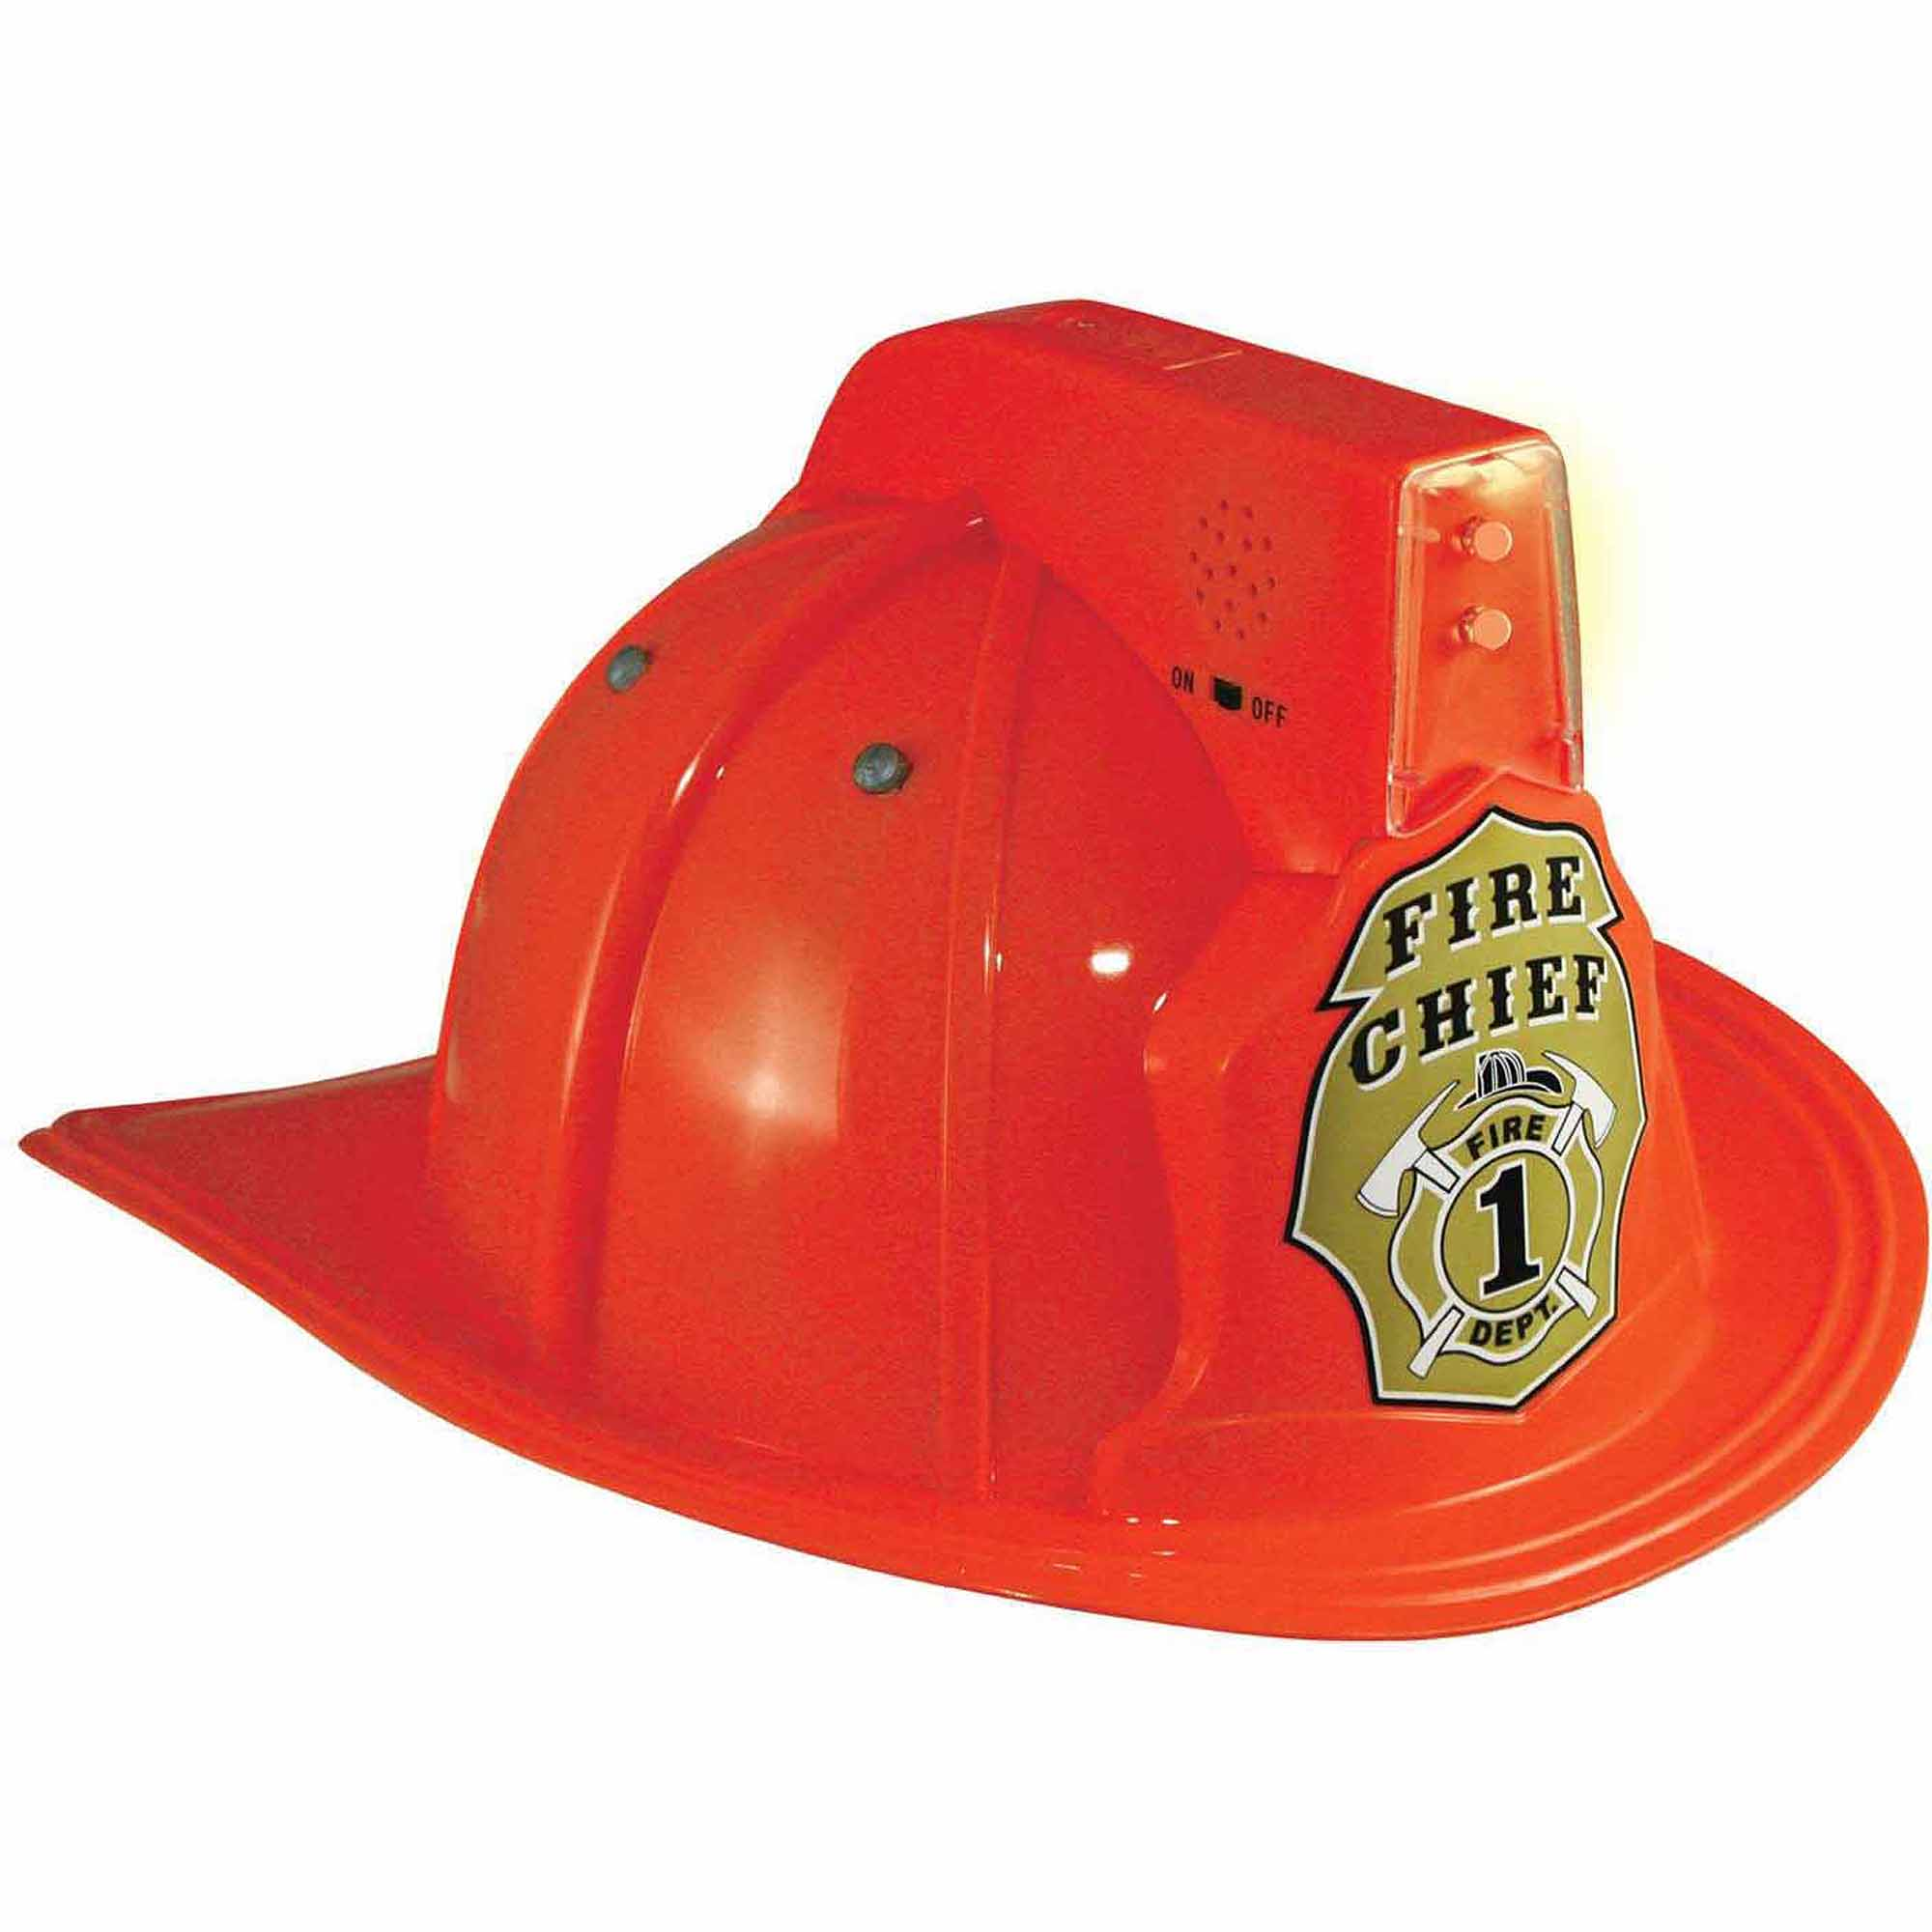 Jr. Fire Chief Helmet with Lights Child Halloween Accessory